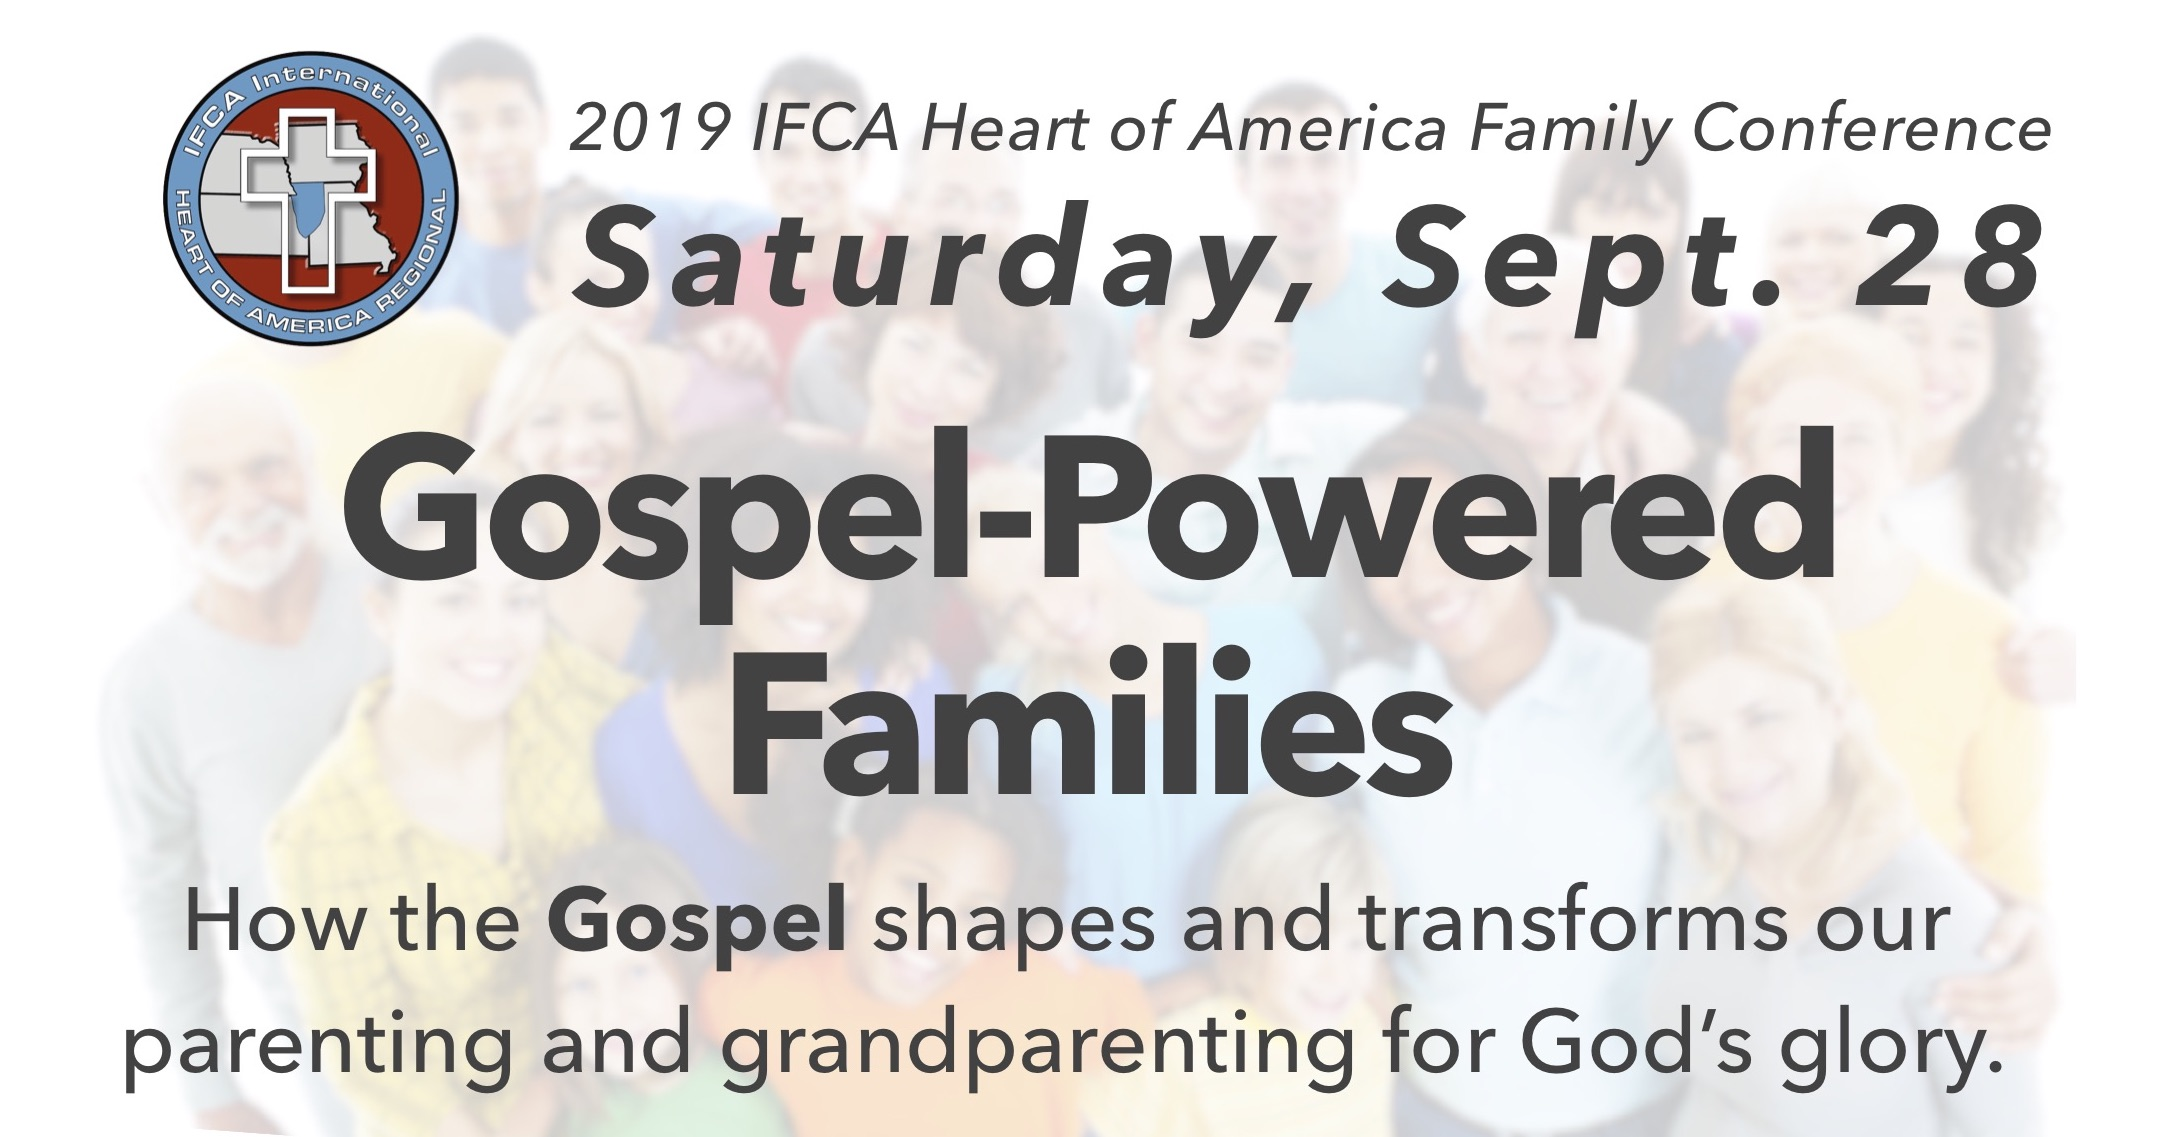 2019 Family Conference Image